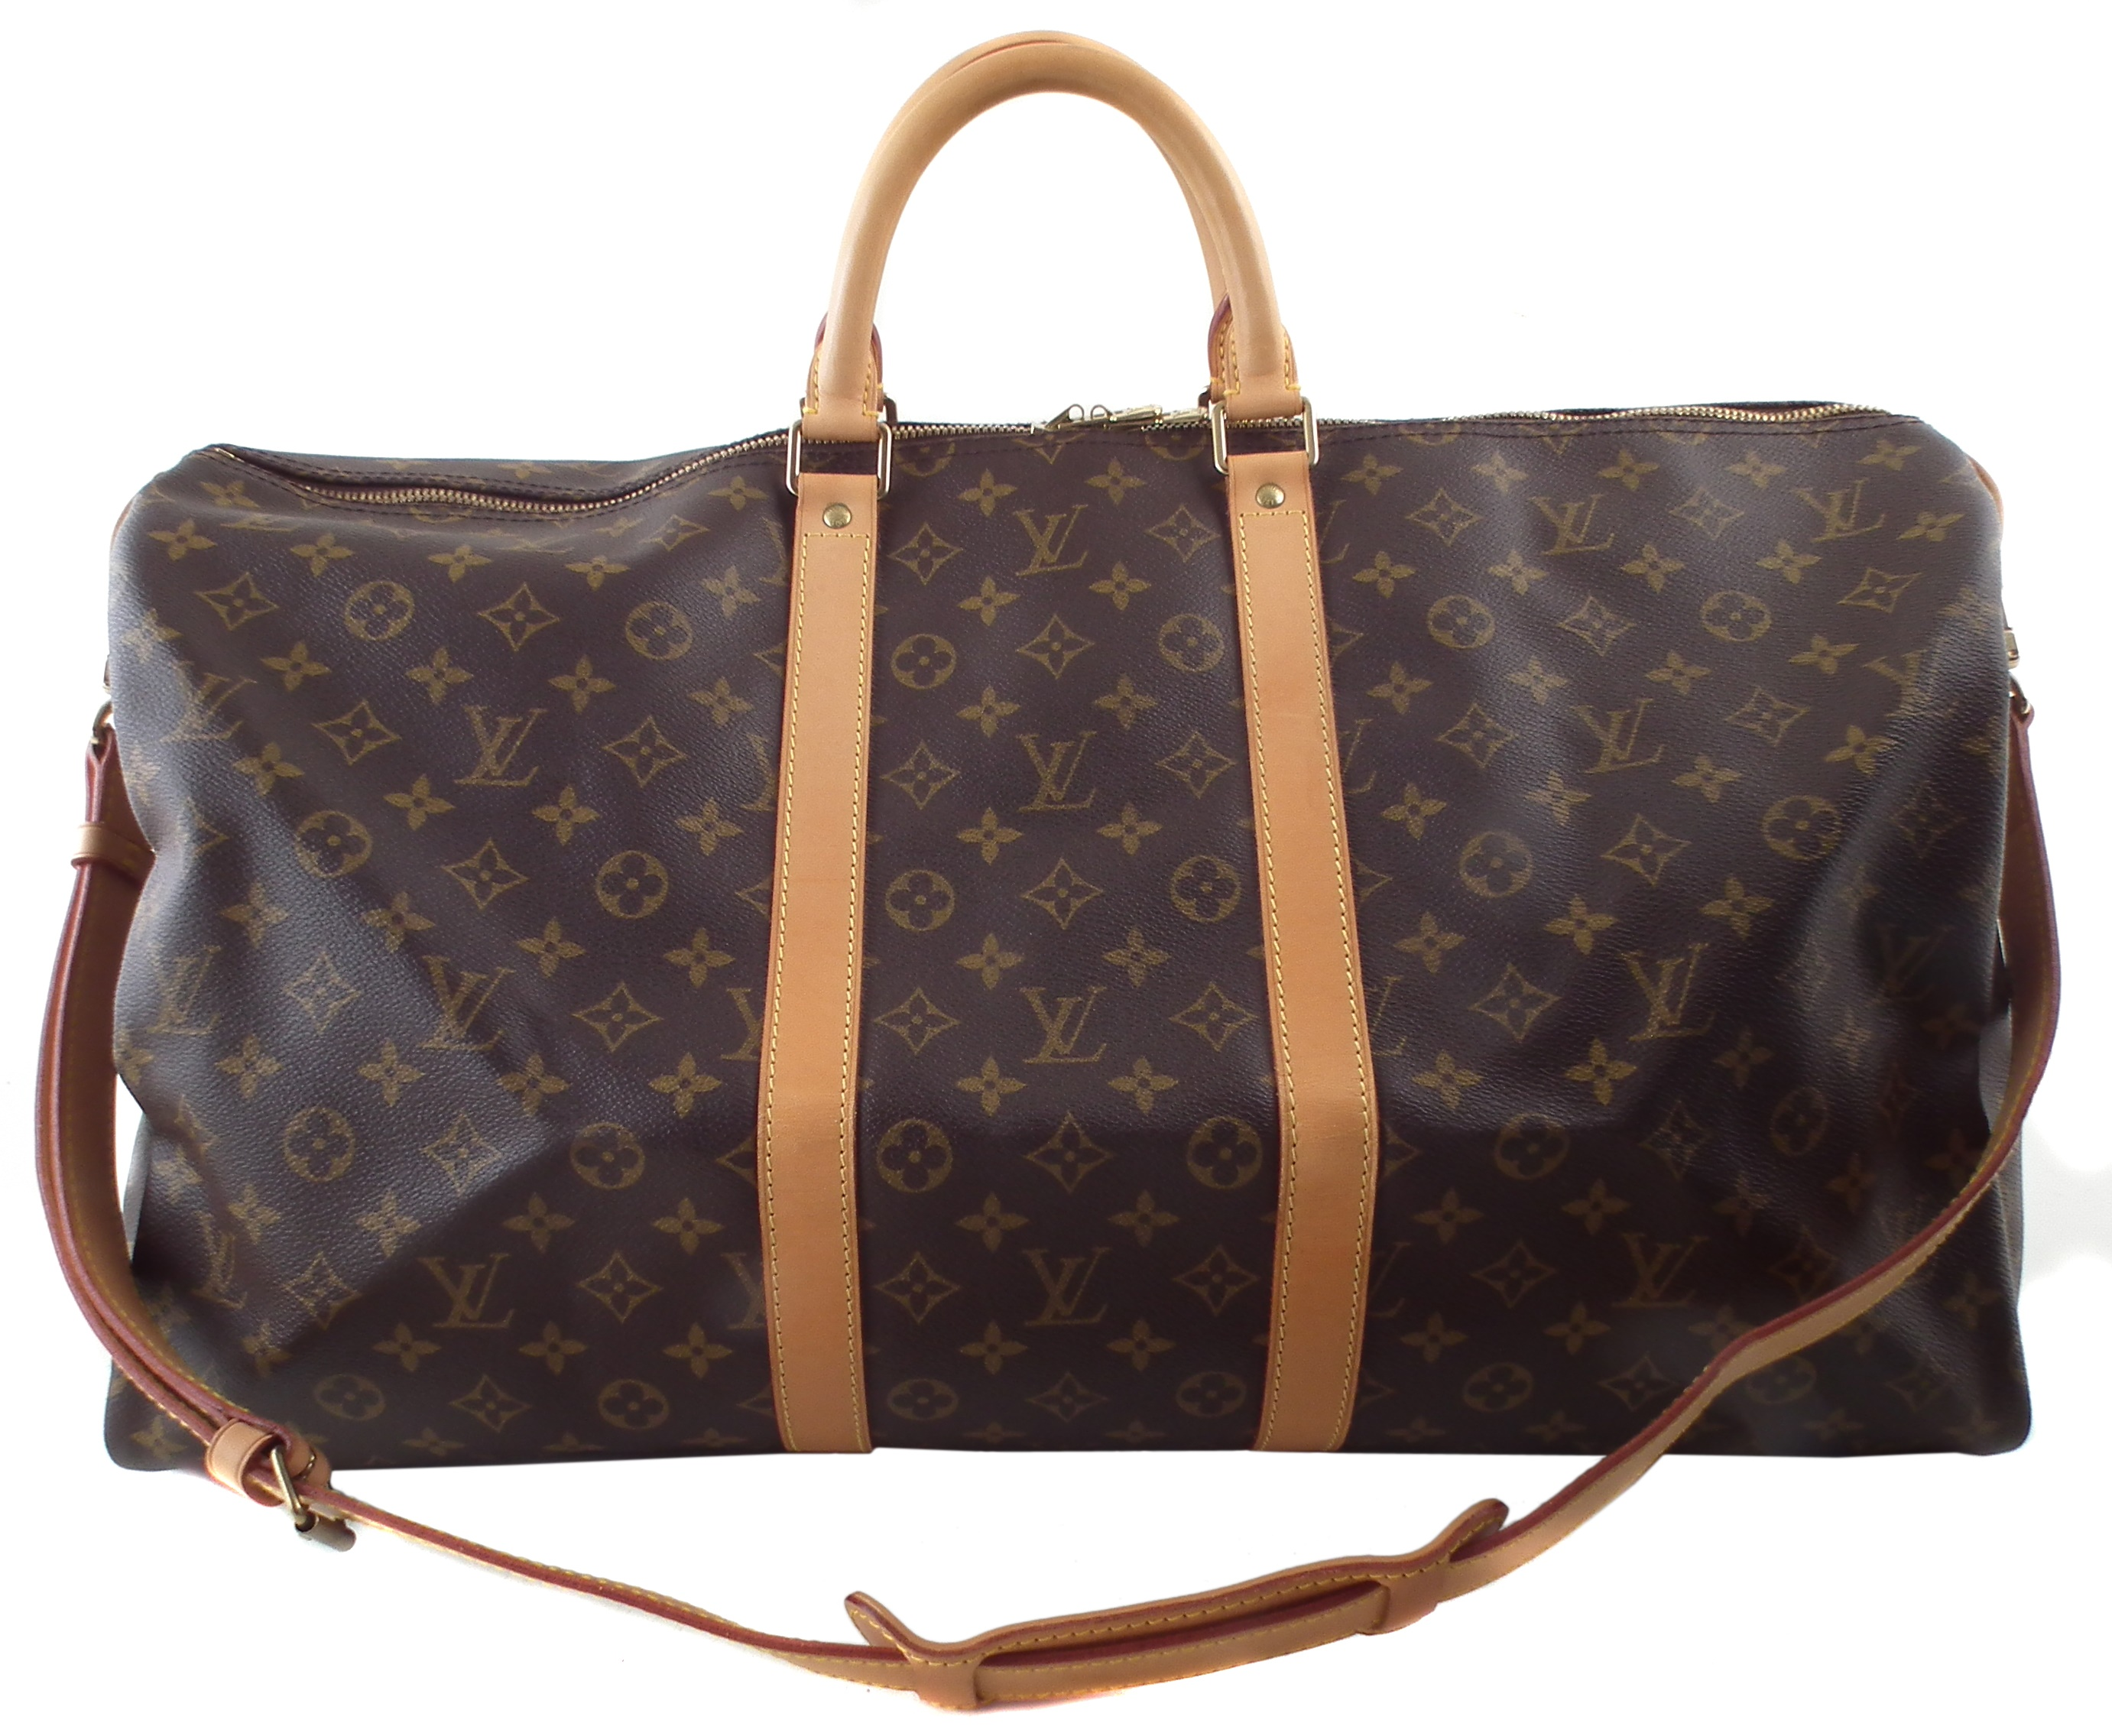 A Louis Vuitton monogram Keepall Bandoulière 55 luggage bag,